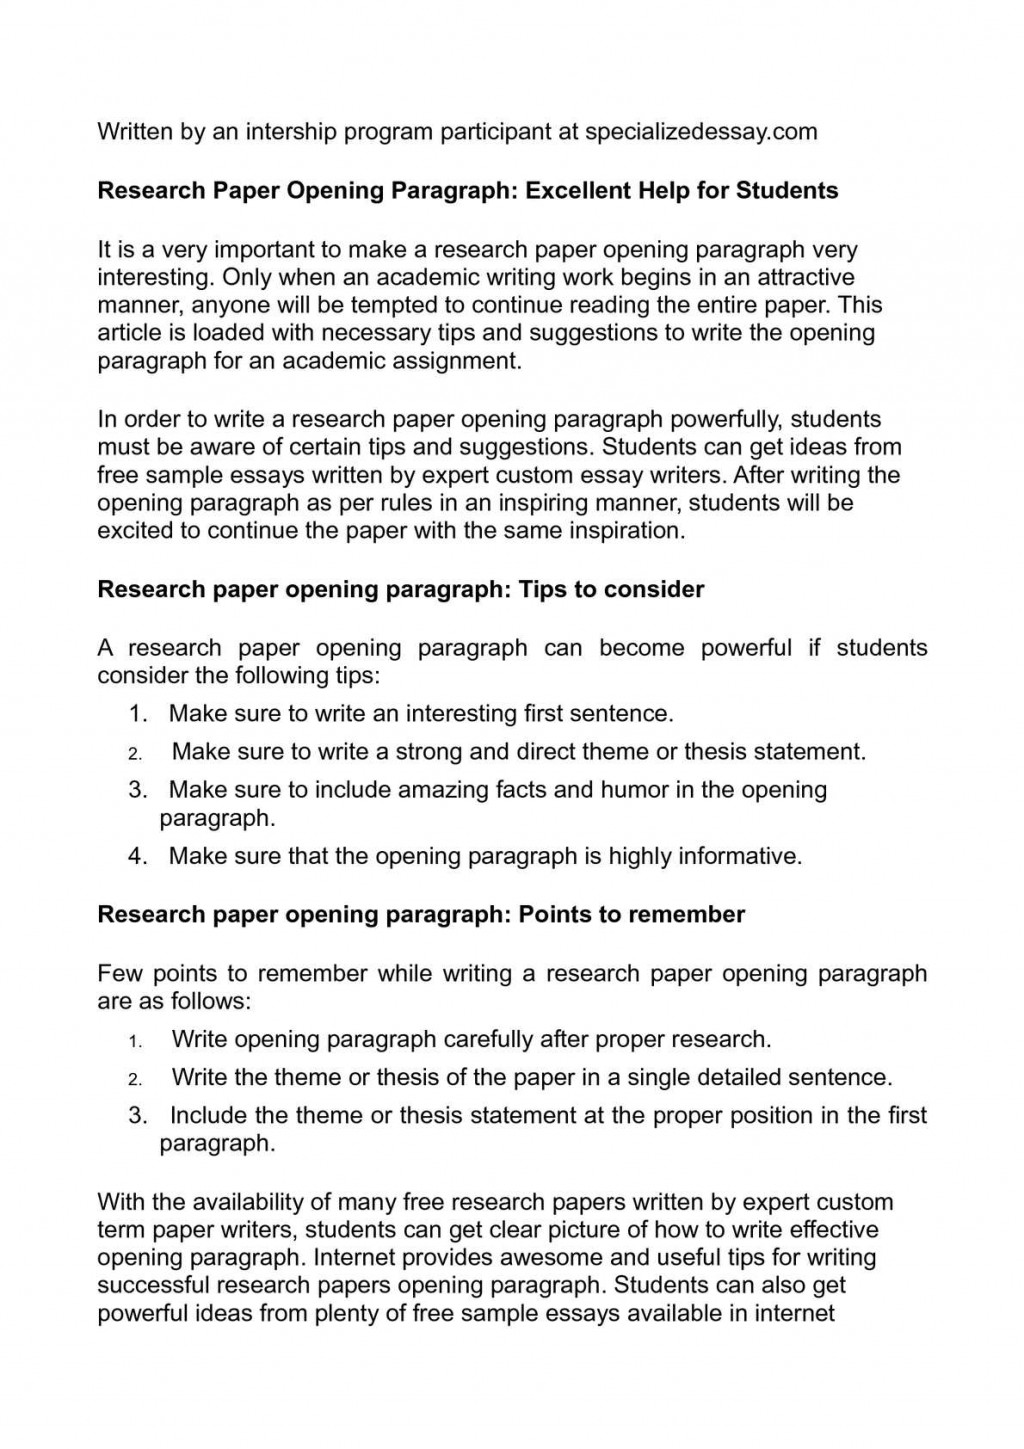 004 P1 Research Paper Good Introduction Sentences Rare For Paragraph A How To Write Conclusion Introductory Large